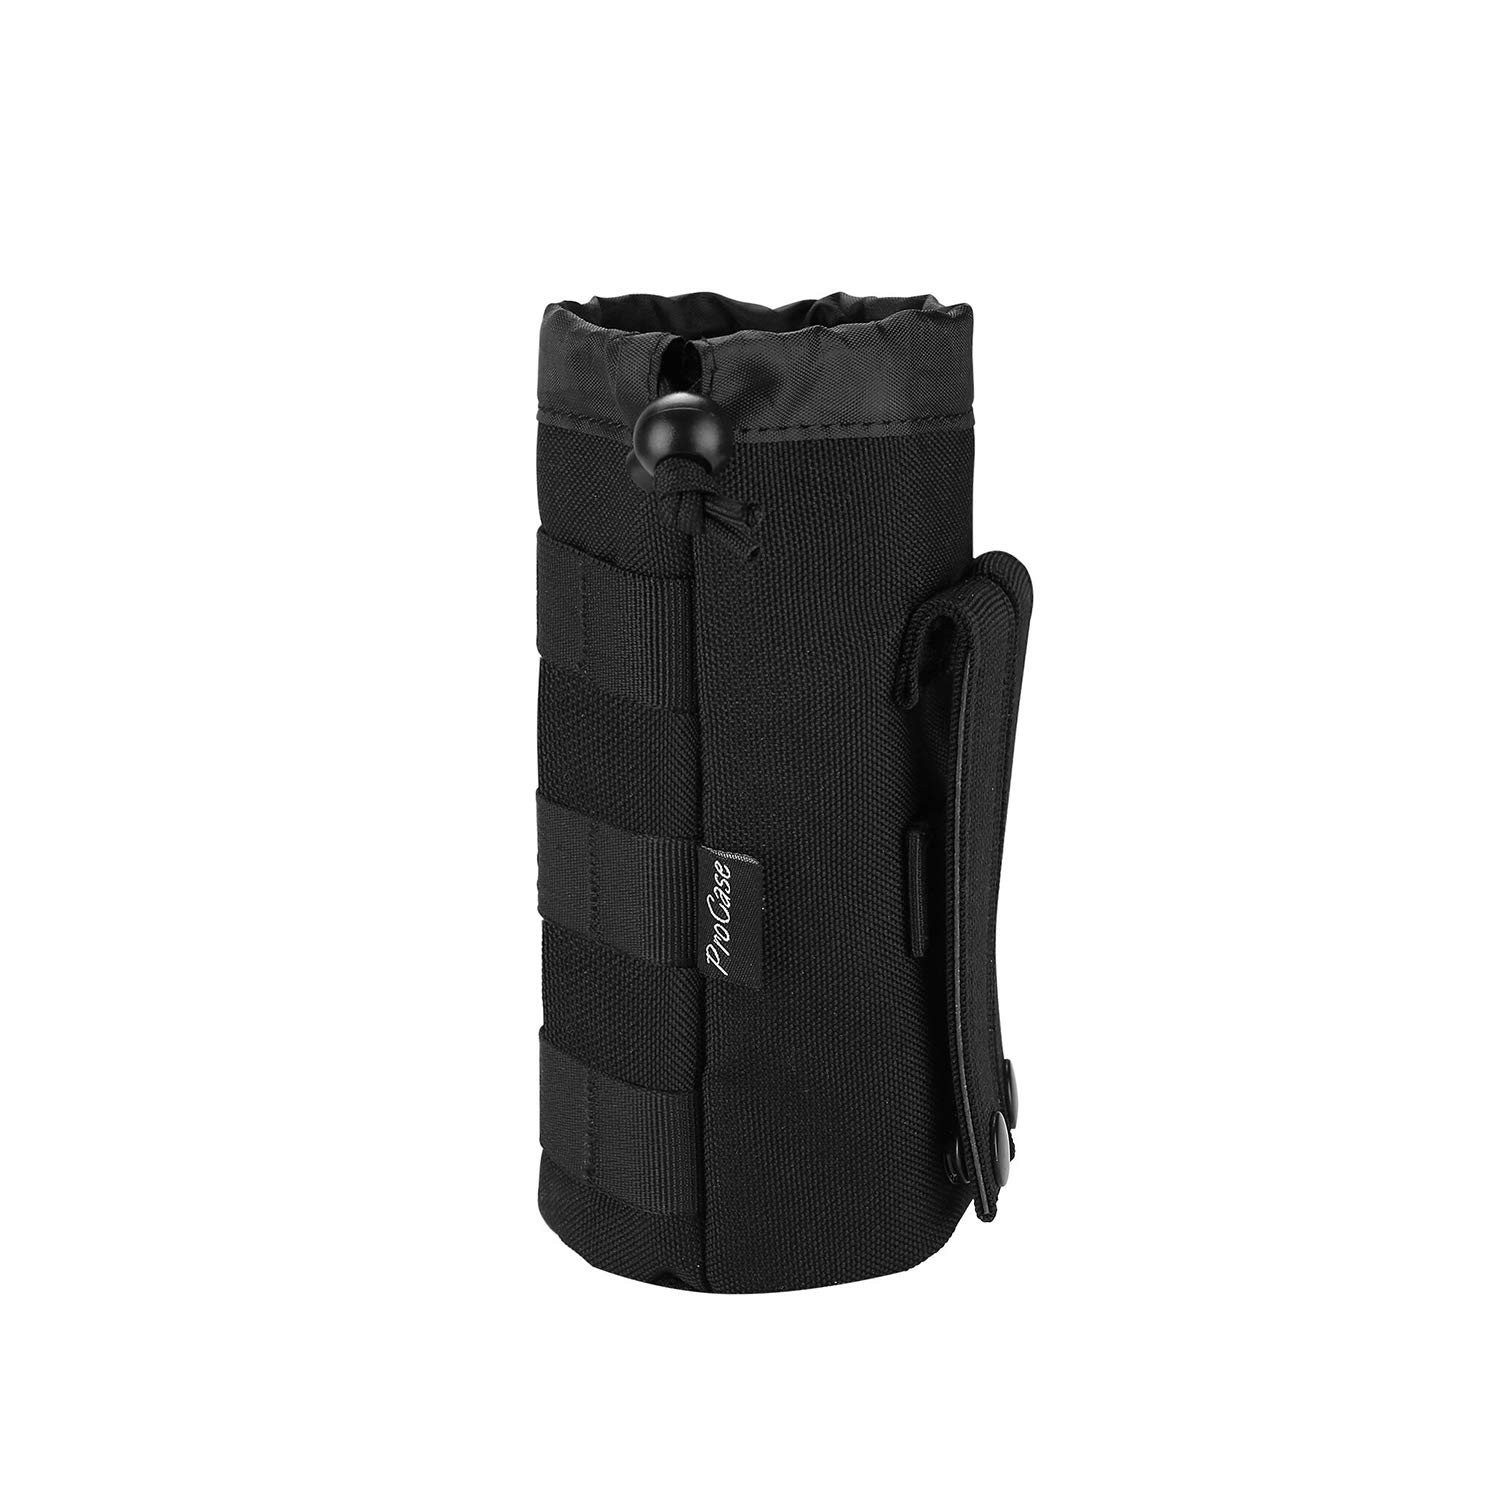 Procase Tactical Molle Water Bottle Pouch, Military Bottle Holder with Top Drawstring & Mesh Bottom, Portable Water Container Pouch Bag Hydration Carrier for Camping Hiking Hunting Traveling –Black